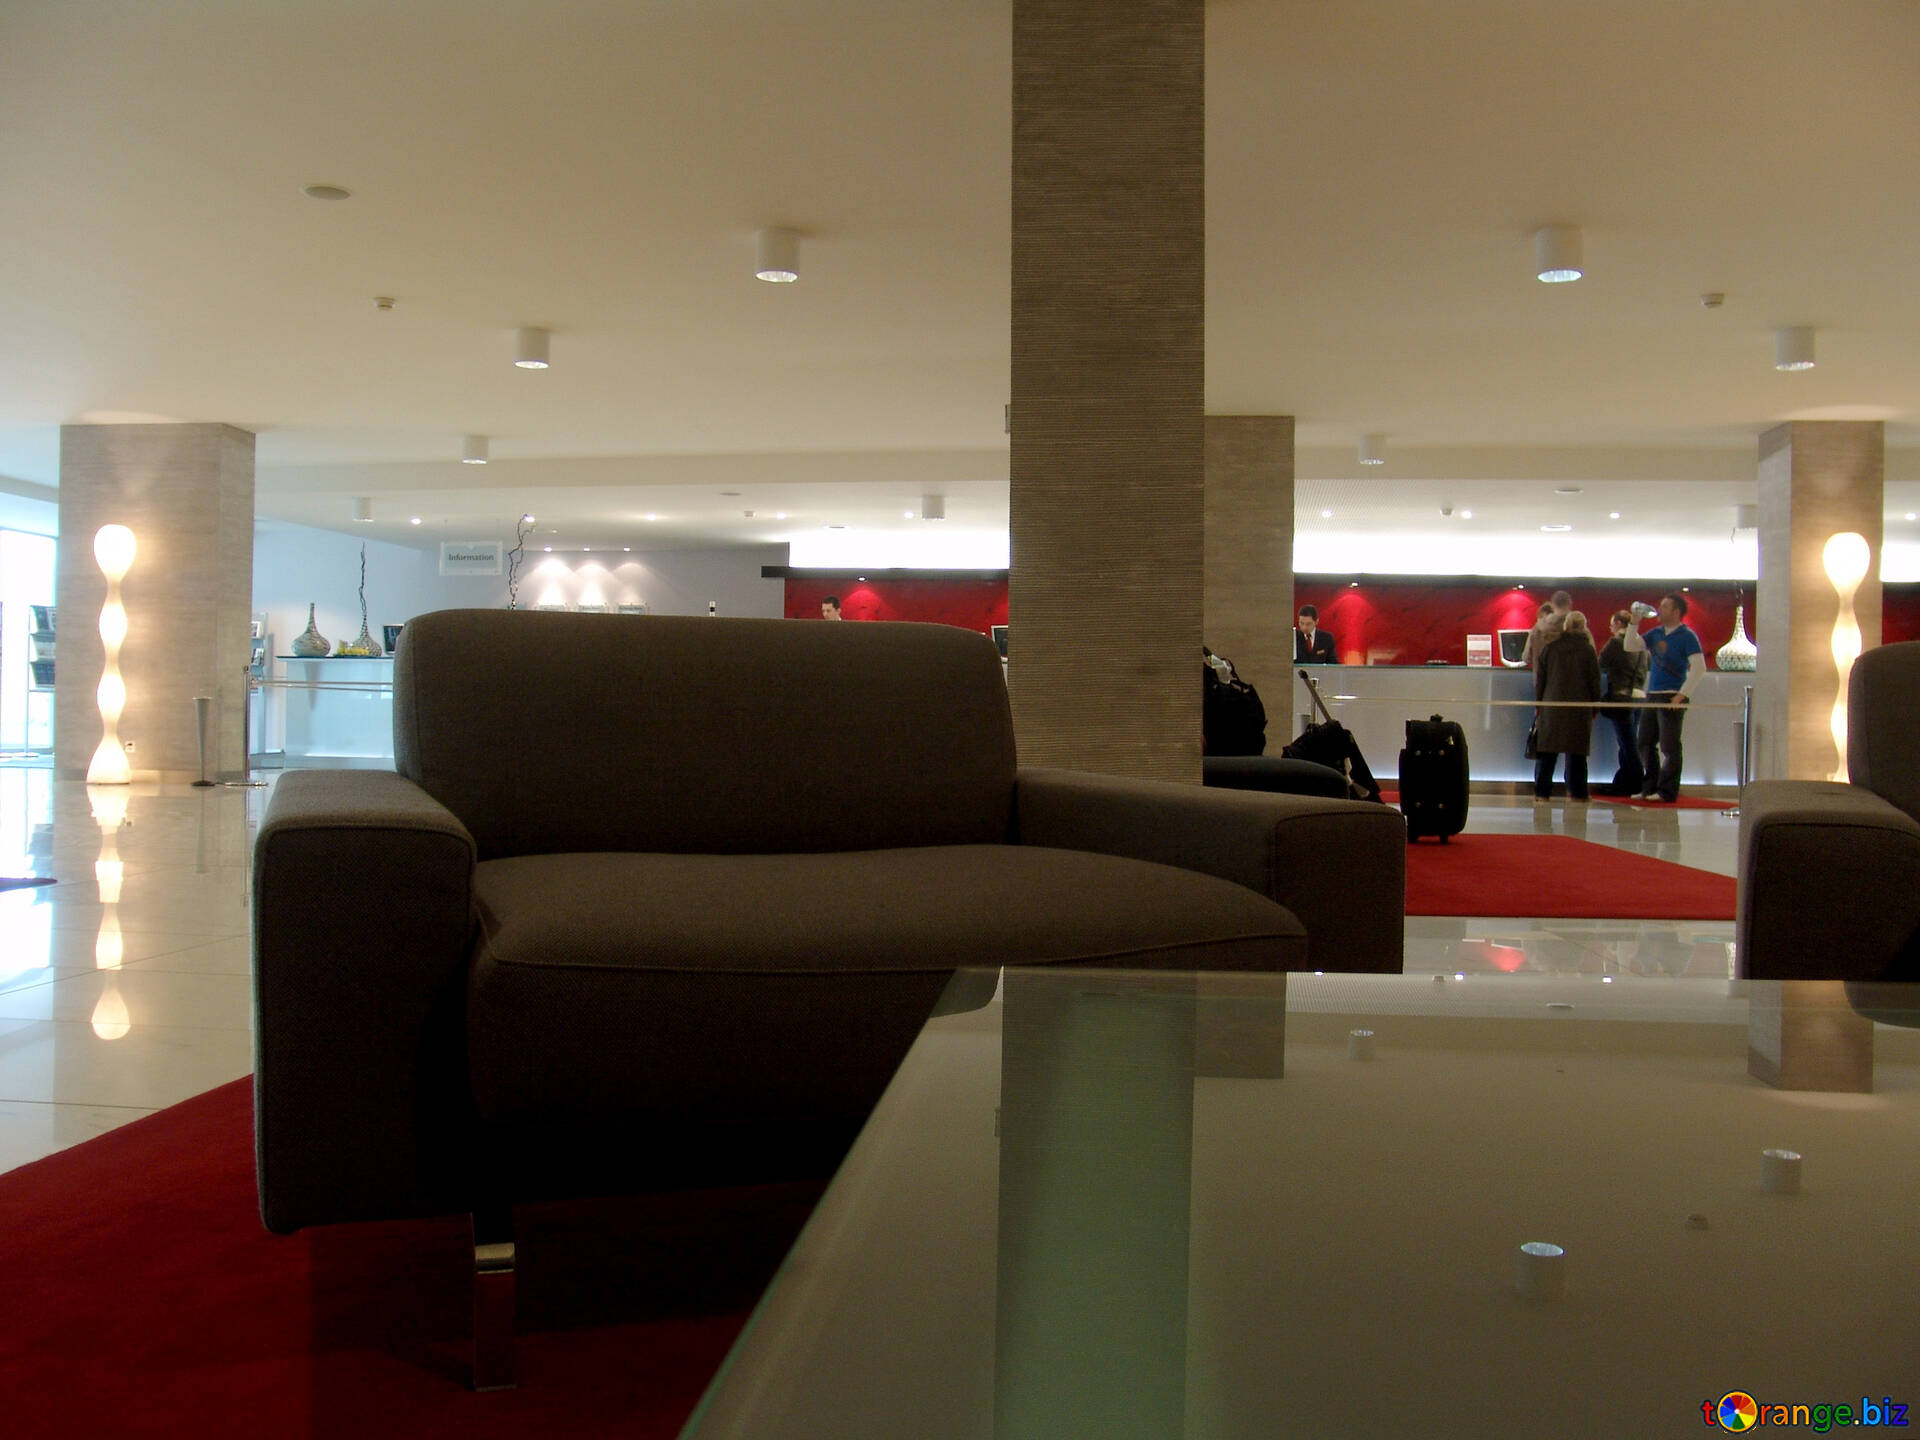 Download Free Image Sofa In The Lobby Of A European Hotel In HD Wallpaper  Size 1920px